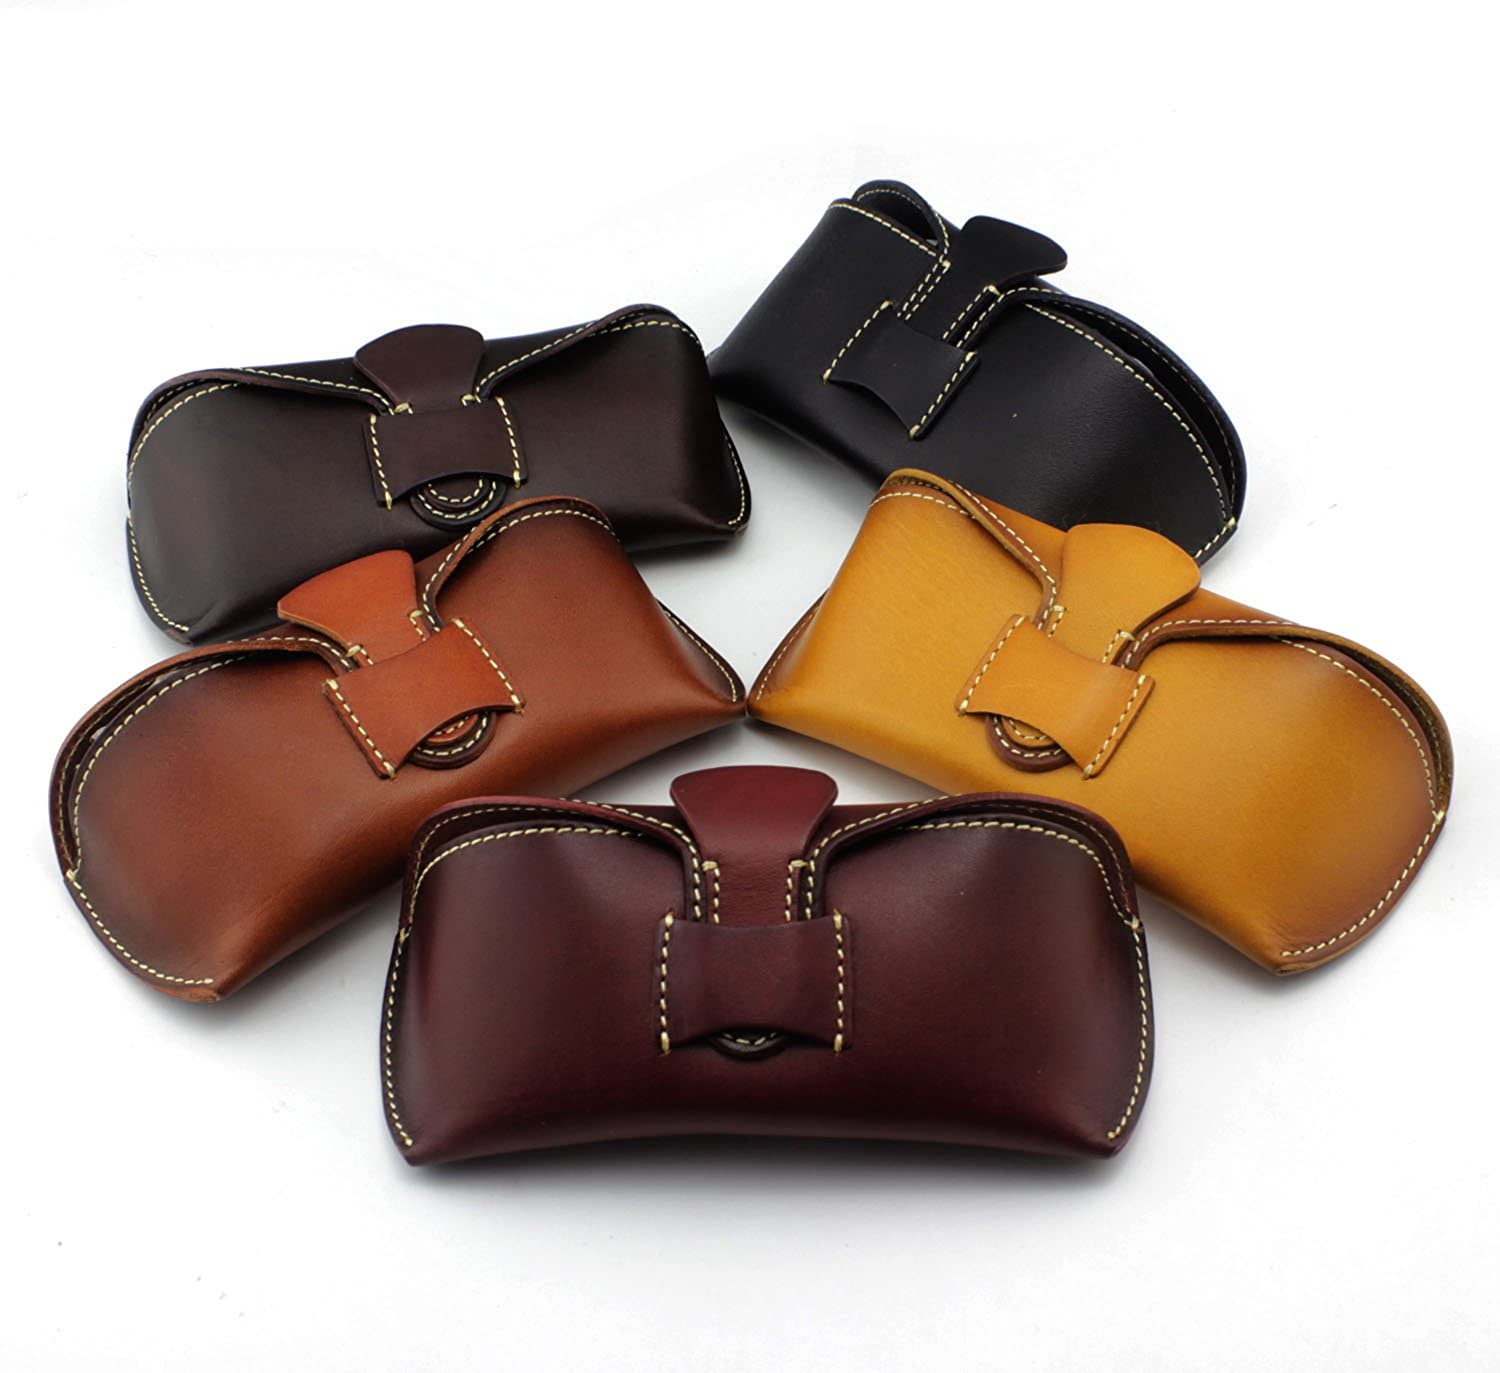 5 Color Genuine Leather Vintage Handmade Glasses Case Sunglasses Pouch Gift